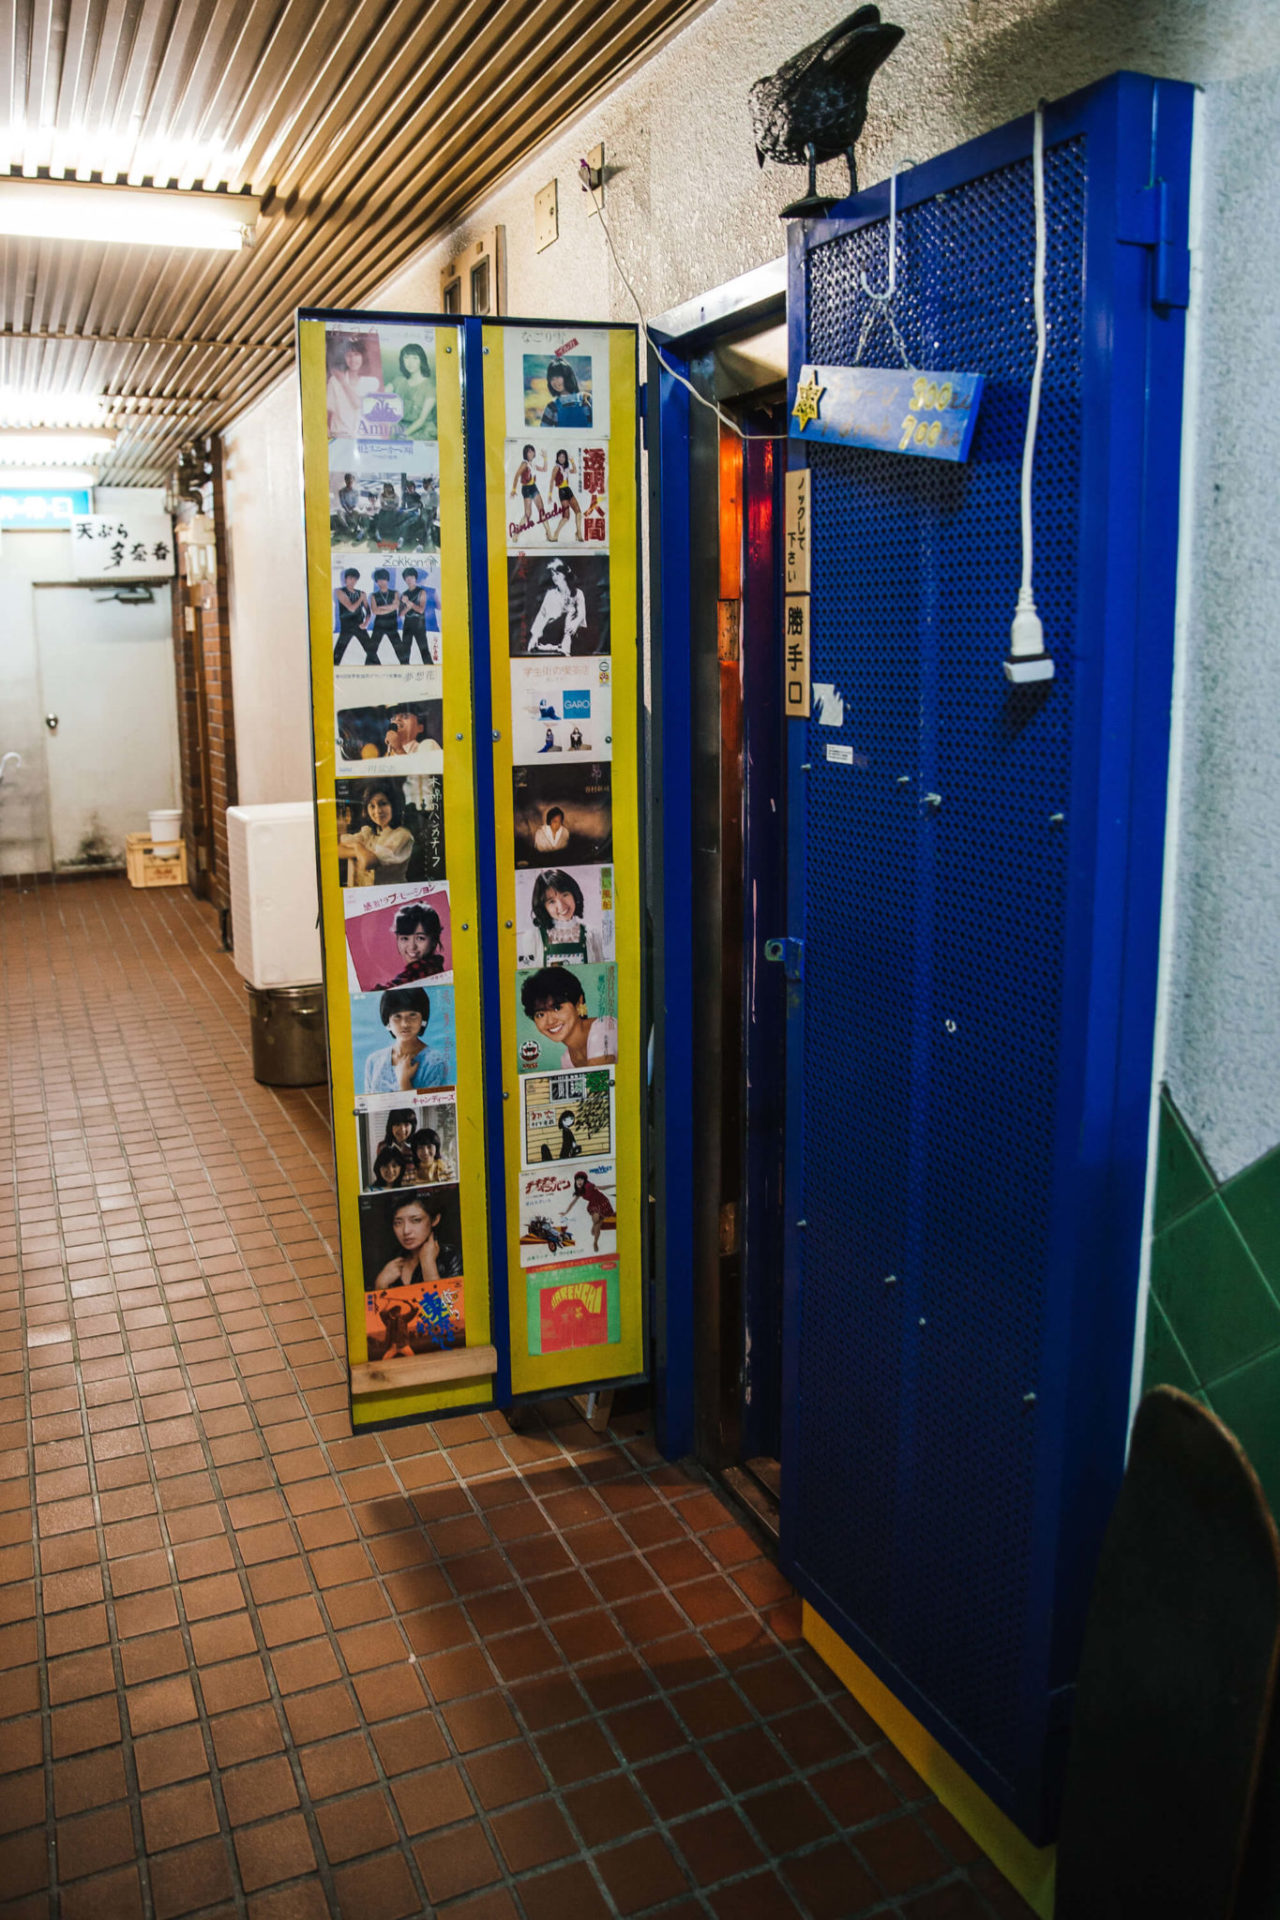 "Inside the Osaka karaoke bar that plays music from 7"" records"